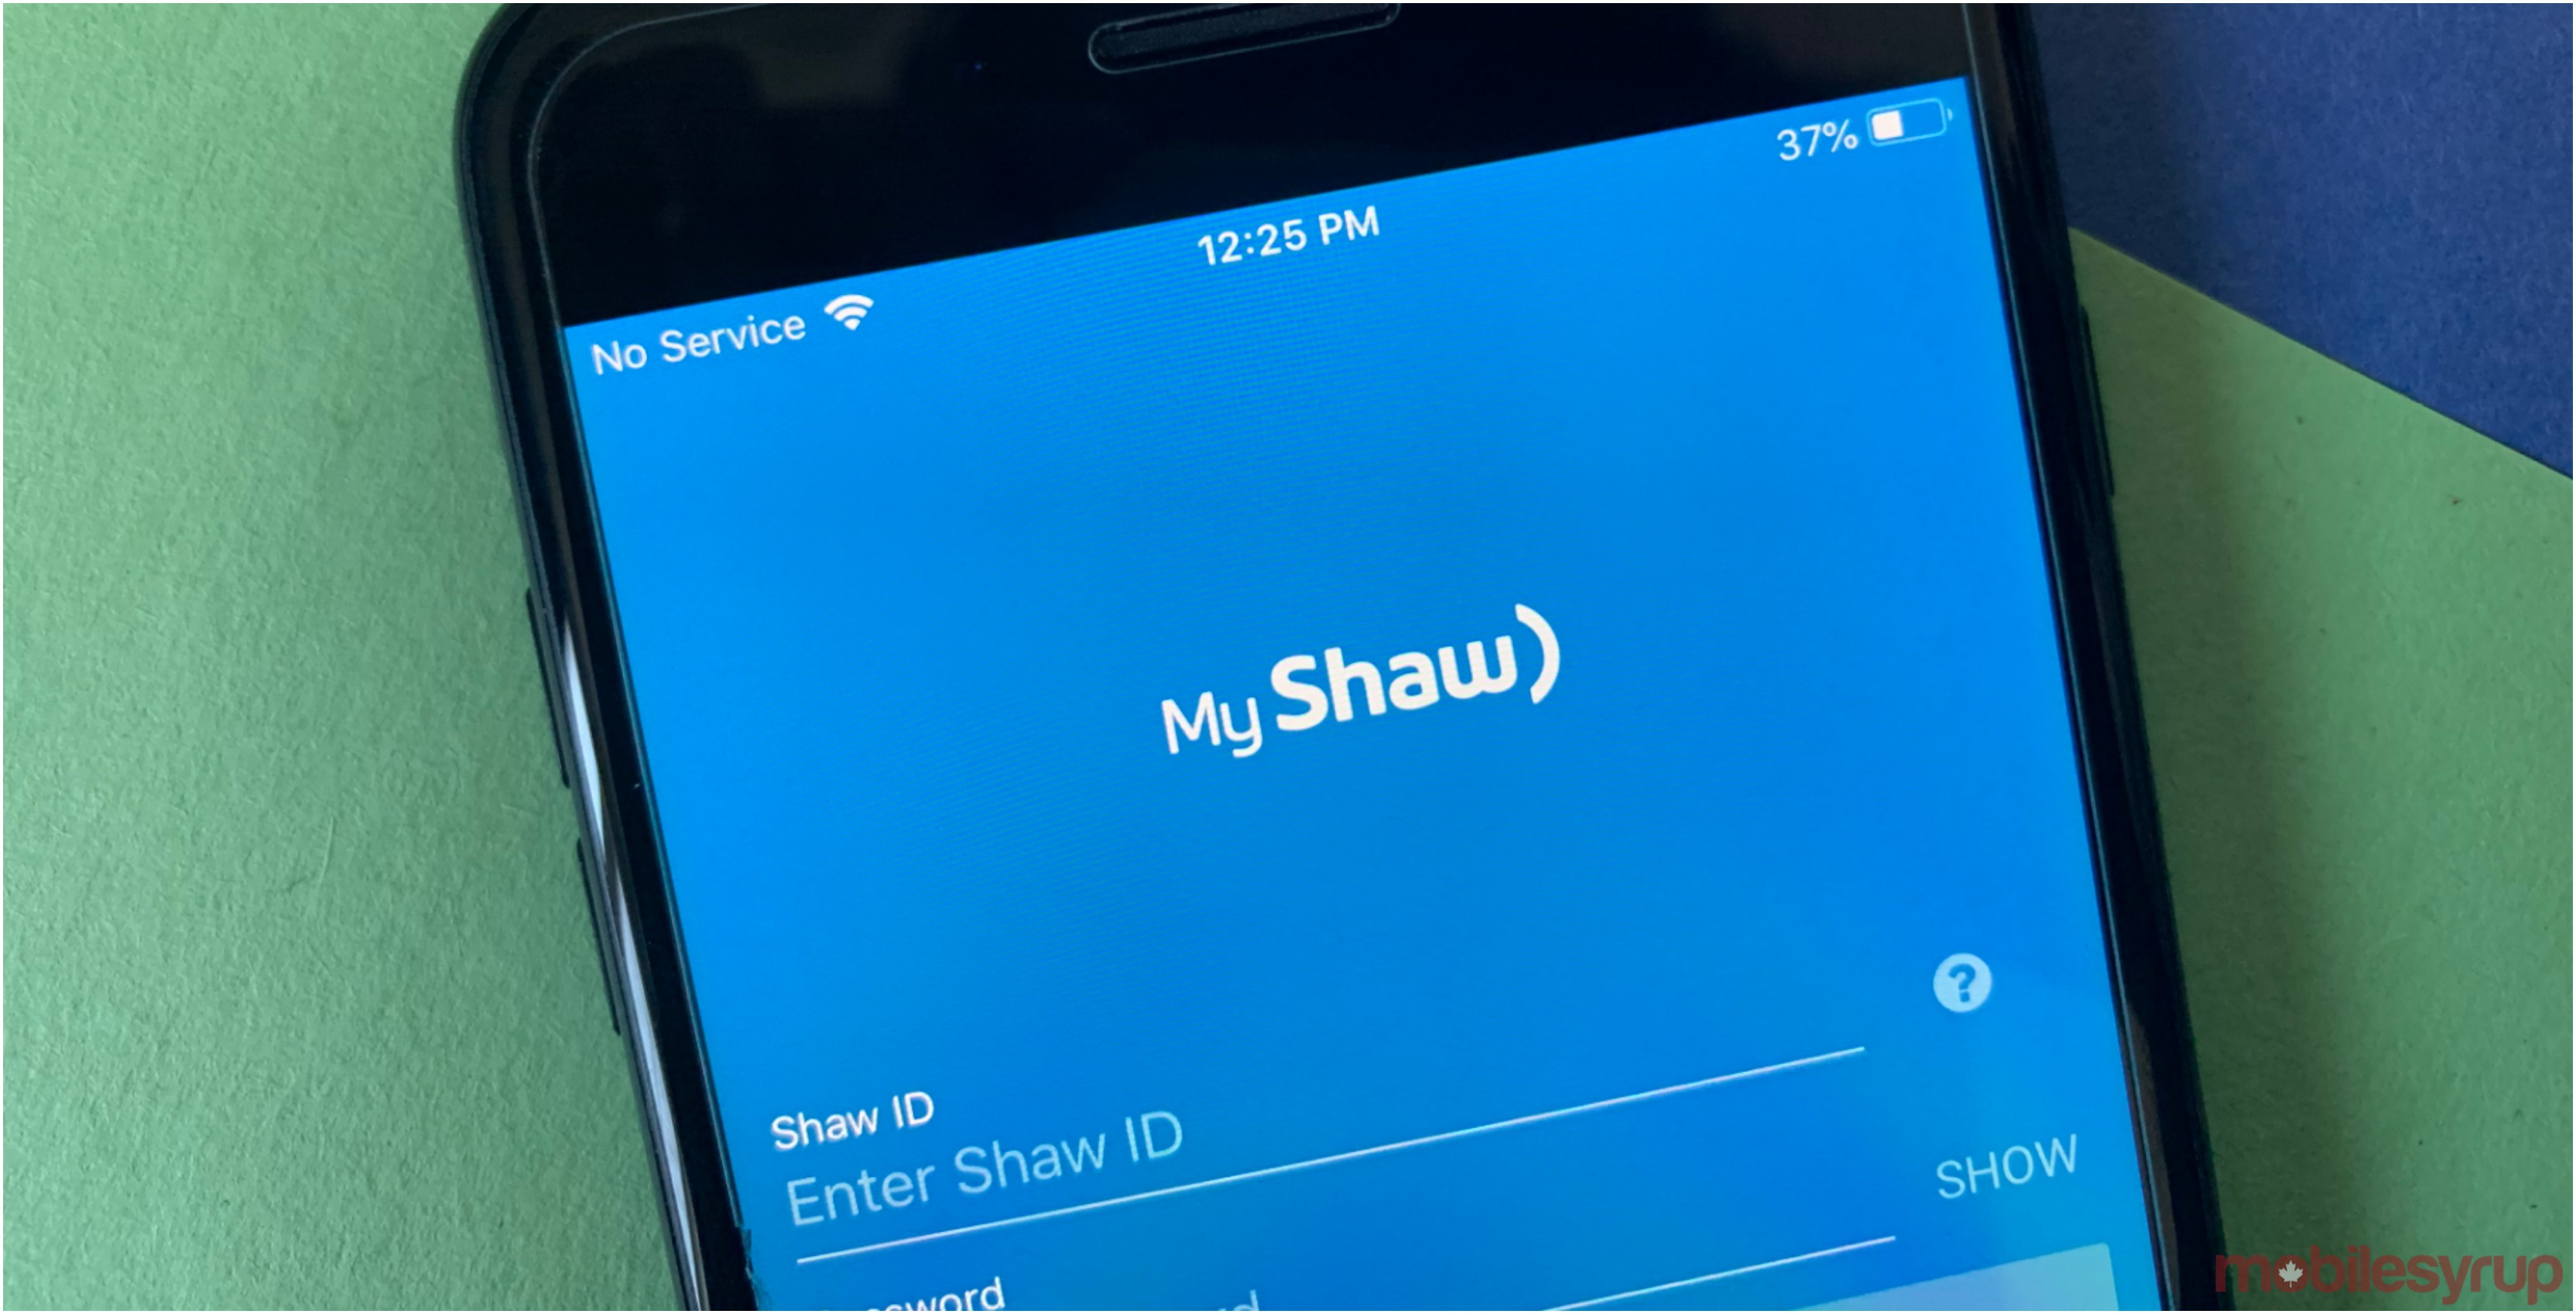 shaw mobile